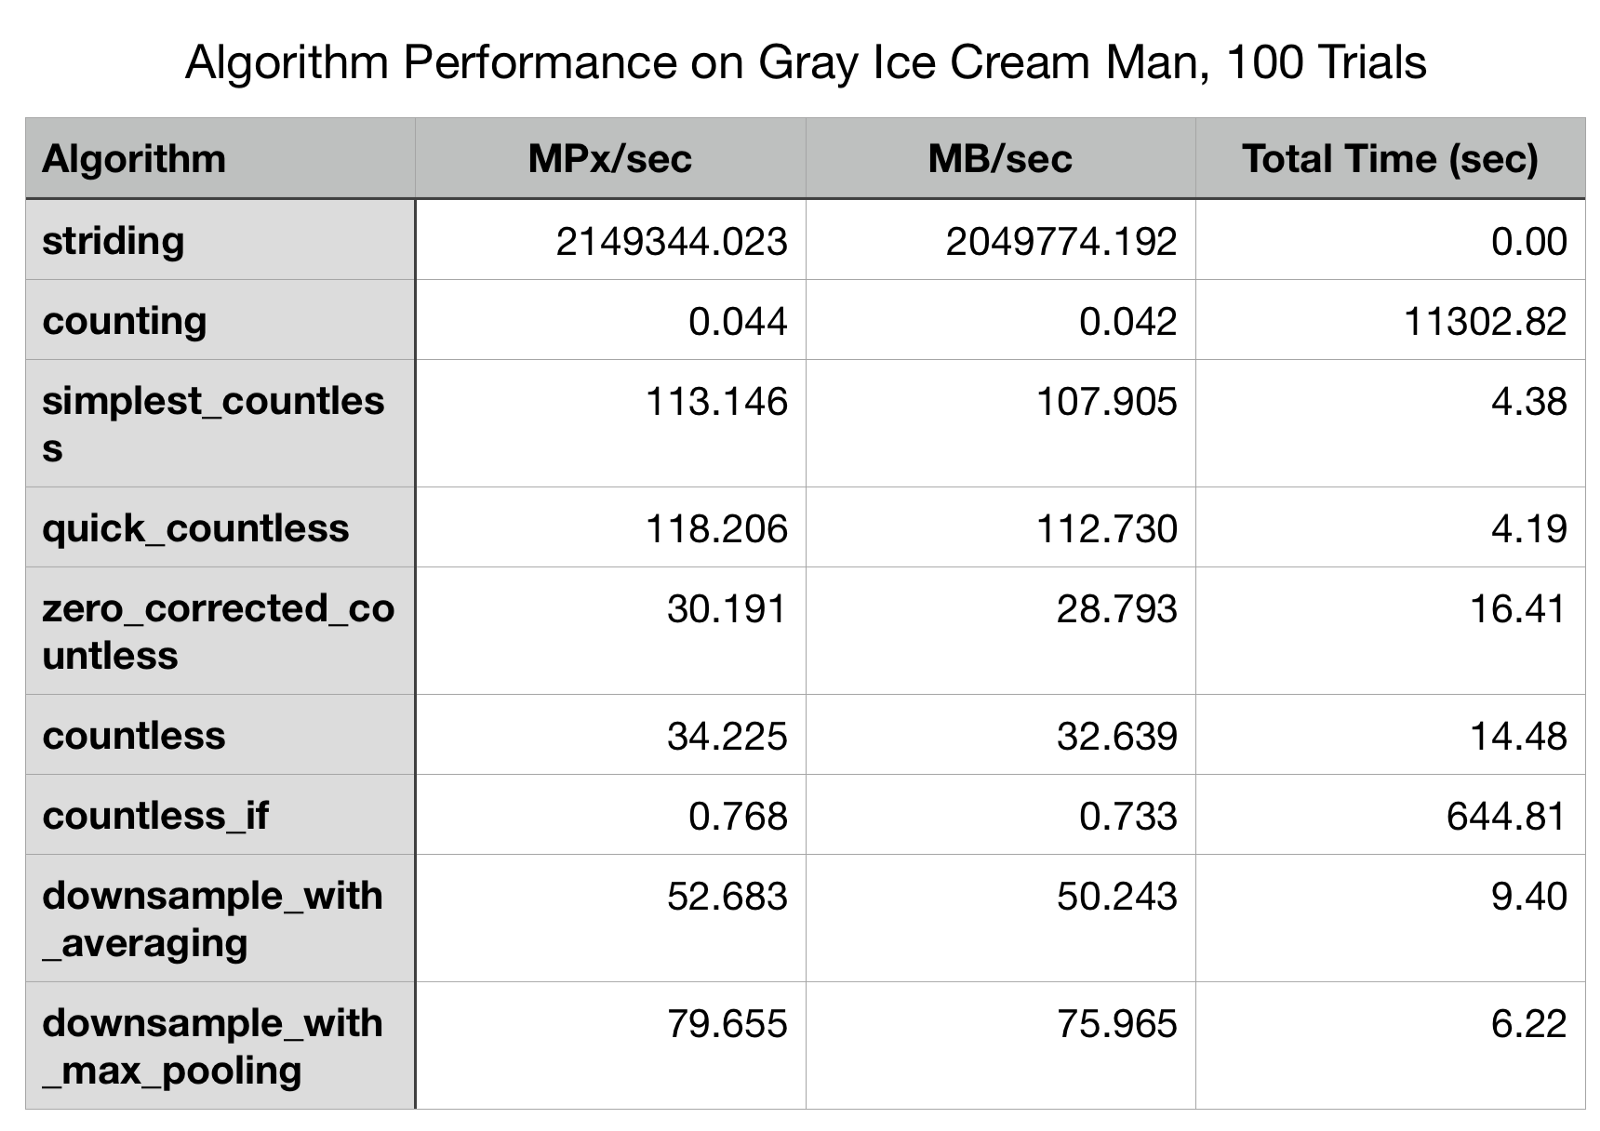 Countless high performance 2x downsampling of labeled images table 4 pythonnumpy algorithm performance on gray ice cream man gamestrikefo Images